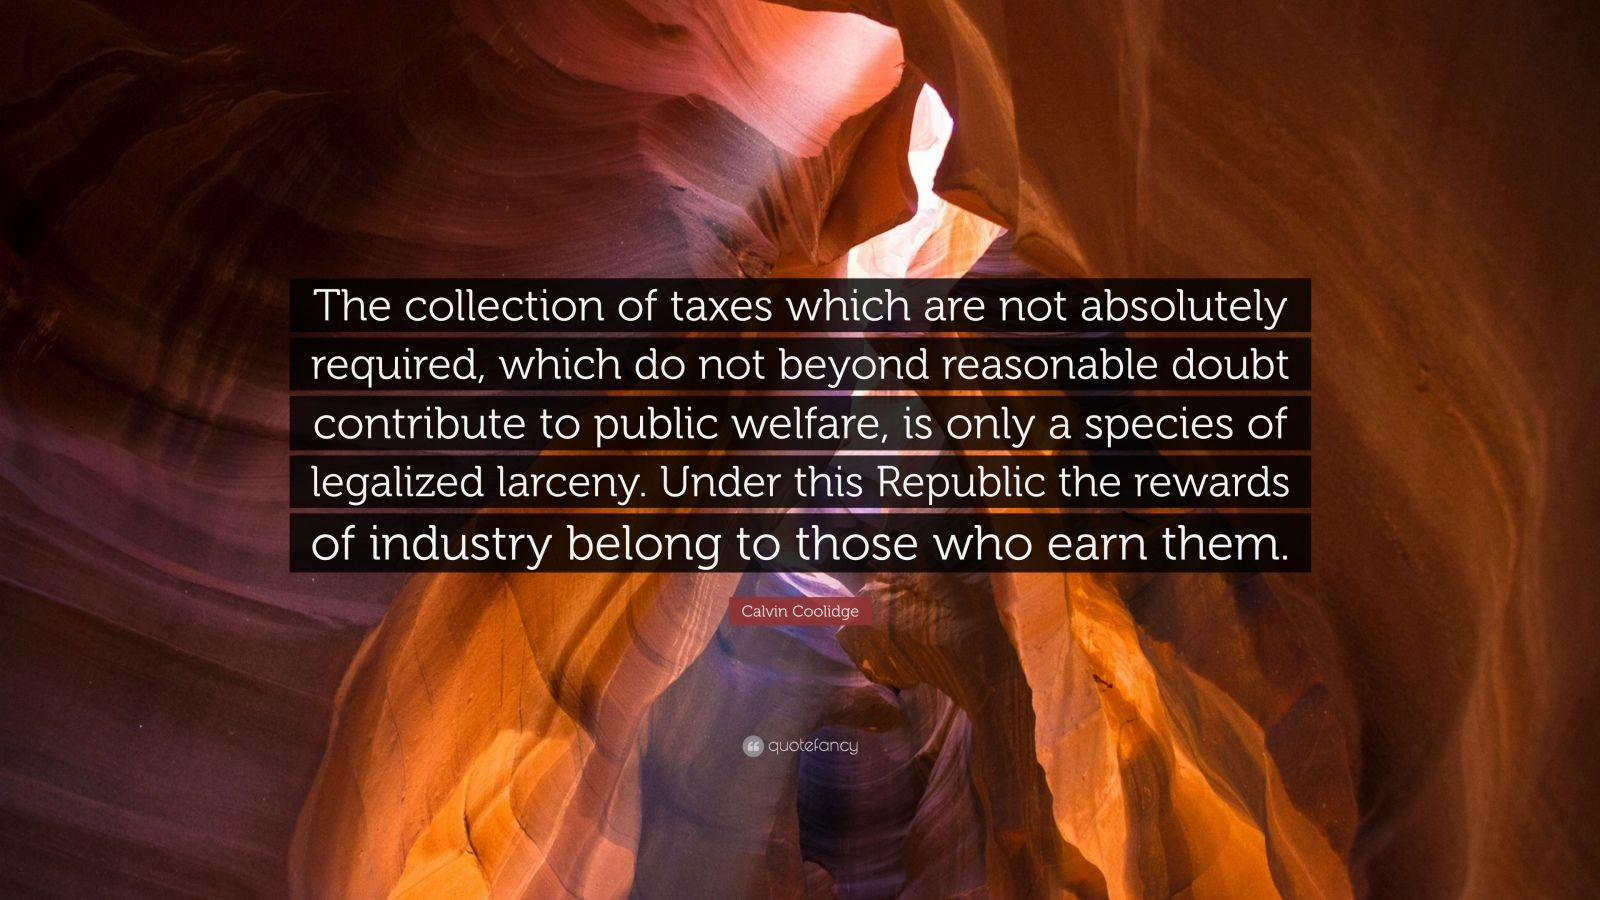 """Calvin Coolidge Quote: """"The collection of taxes which are not absolutely required, which do not beyond reasonable doubt contribute to public welfare, is only a species of legalized larceny. Under this Republic the rewards of industry belong to those who earn them."""""""